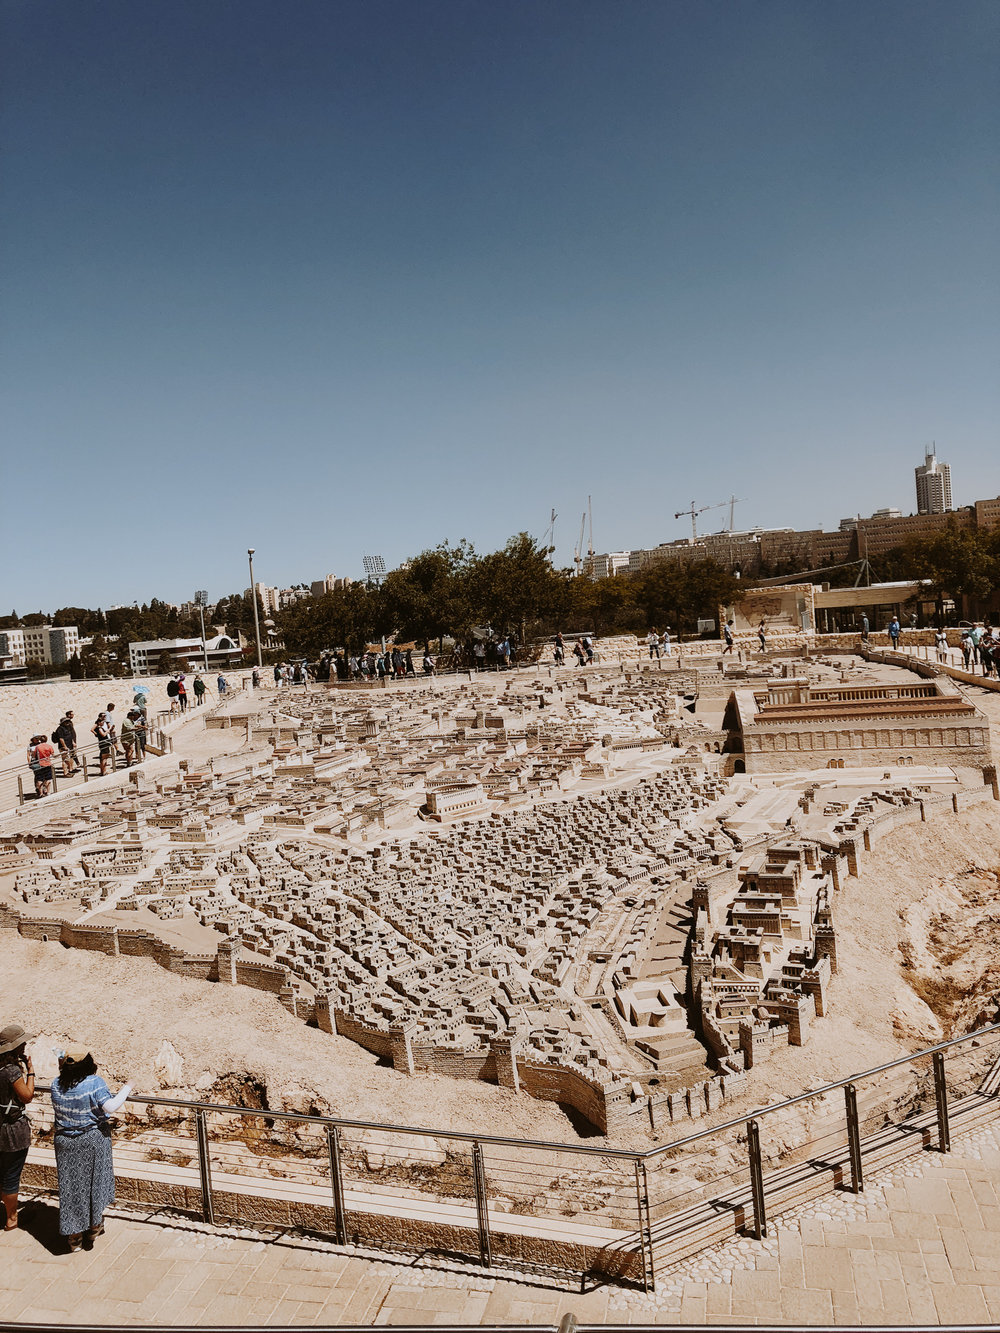 An overview of Jerusalem from the Israel Museum.